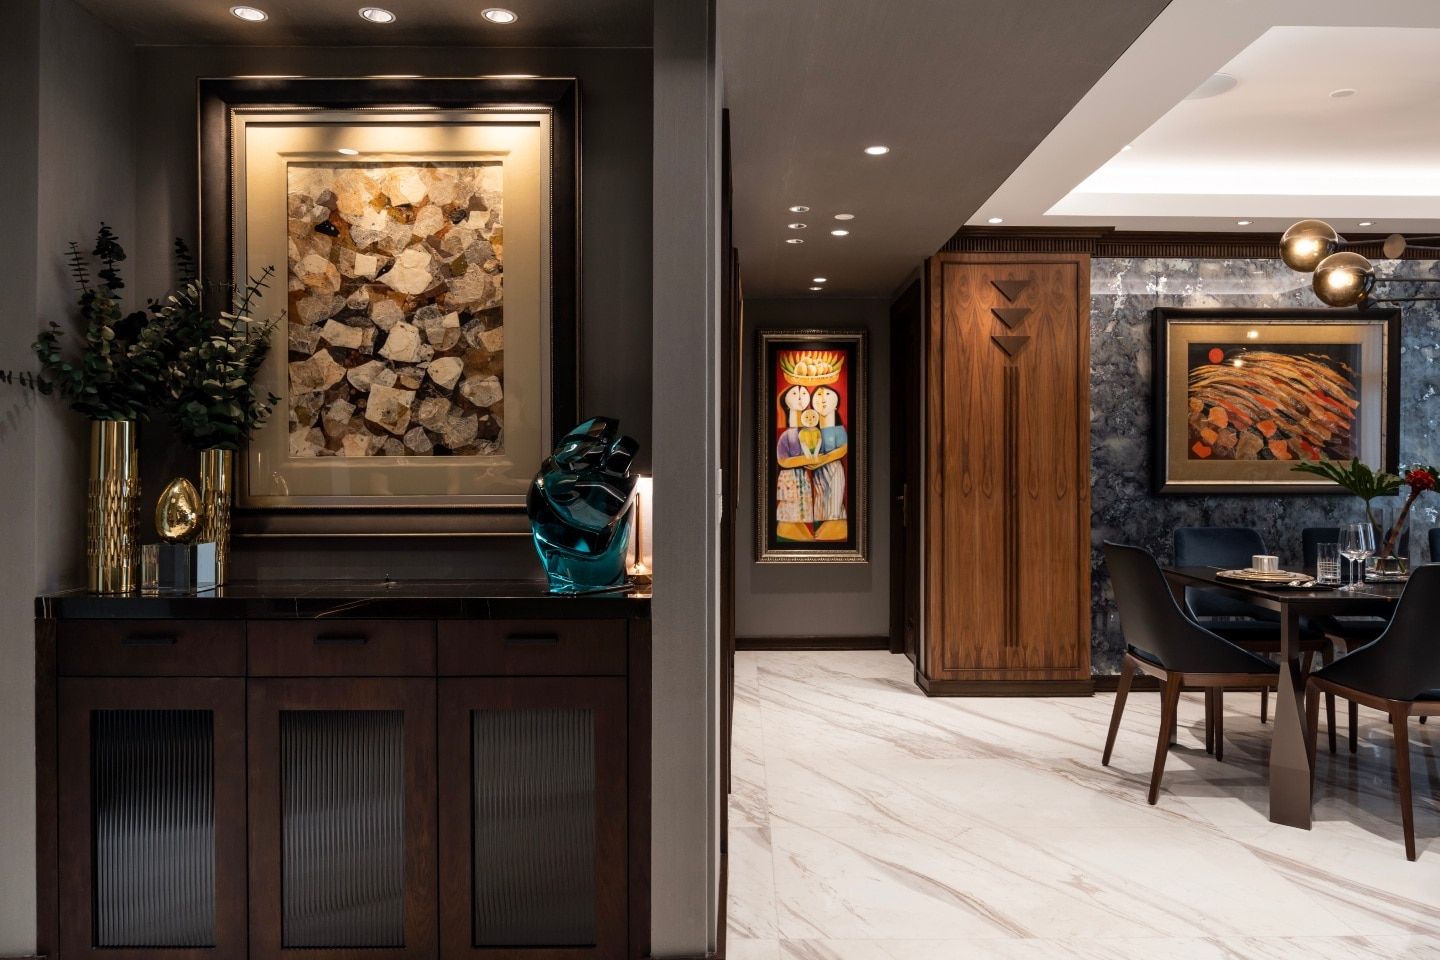 In this art deco-inspired condo, Jigs Adefuin incorporates select works of art by Filipino masters.